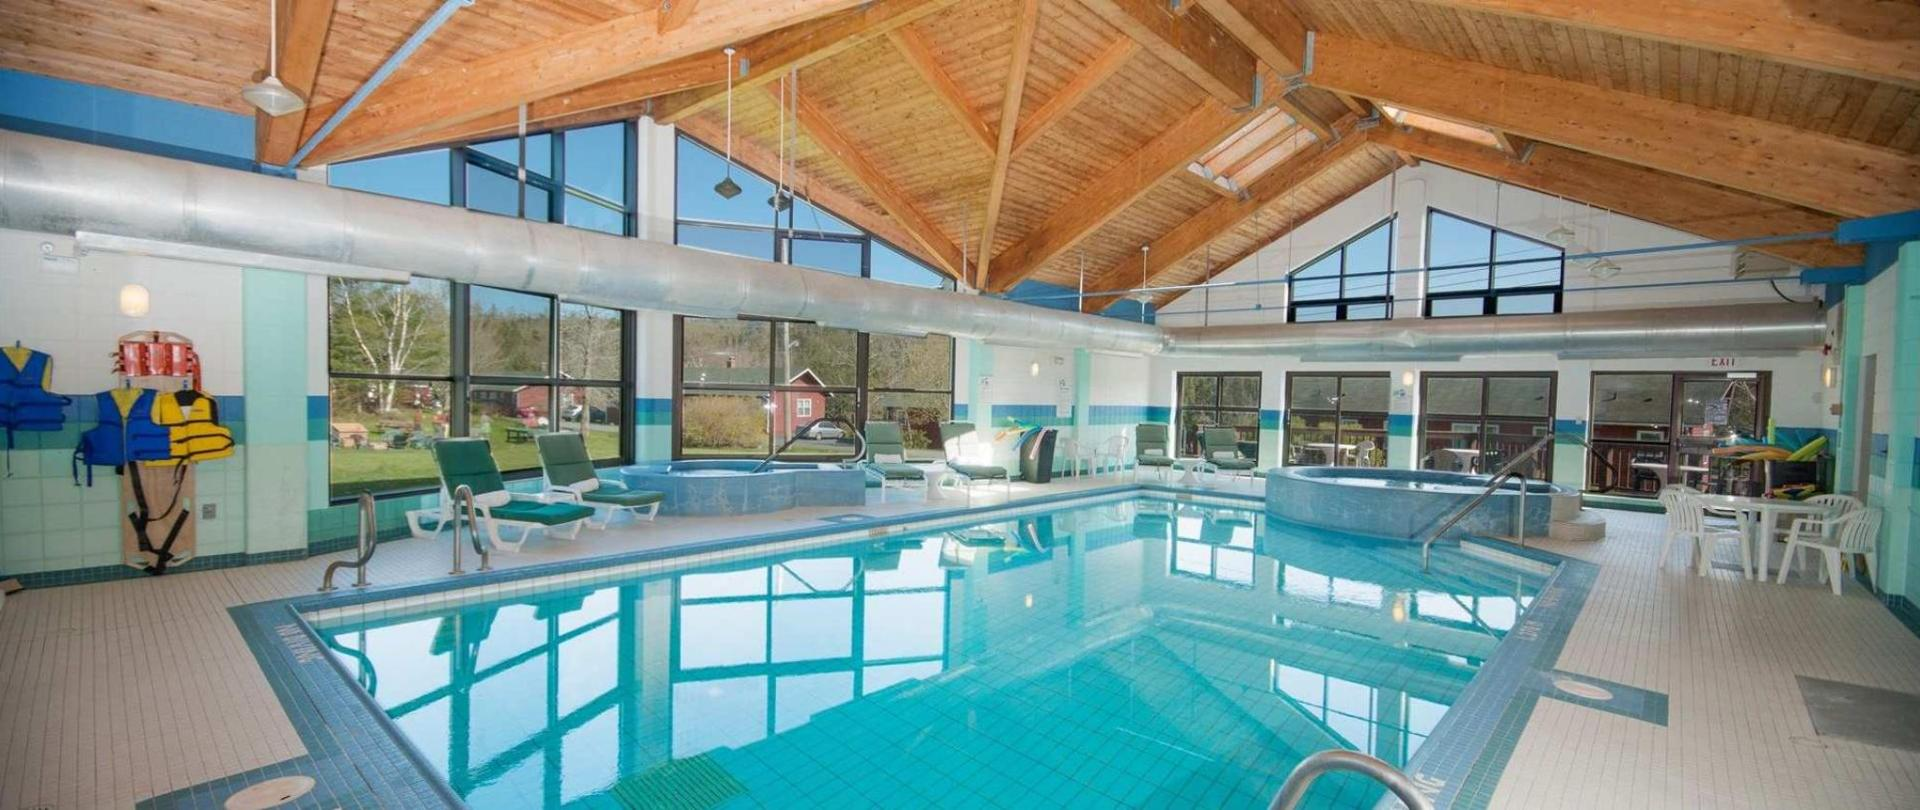 Liscombe Lodge Resort & Conference Center